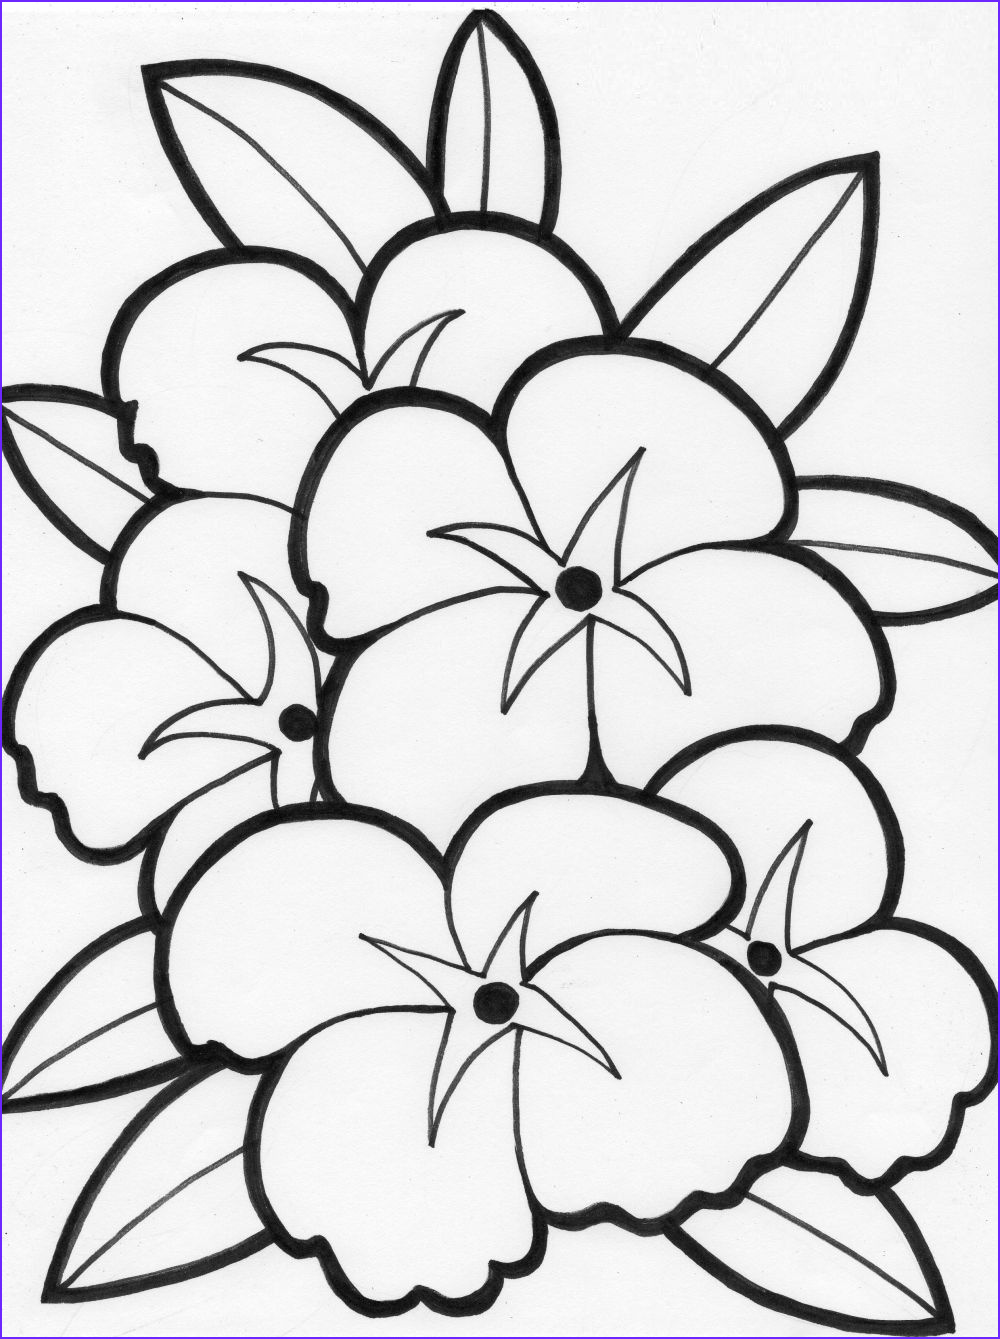 Coloring for Teens Unique Photos Coloring Pages Of Flowers for Teenagers Difficult